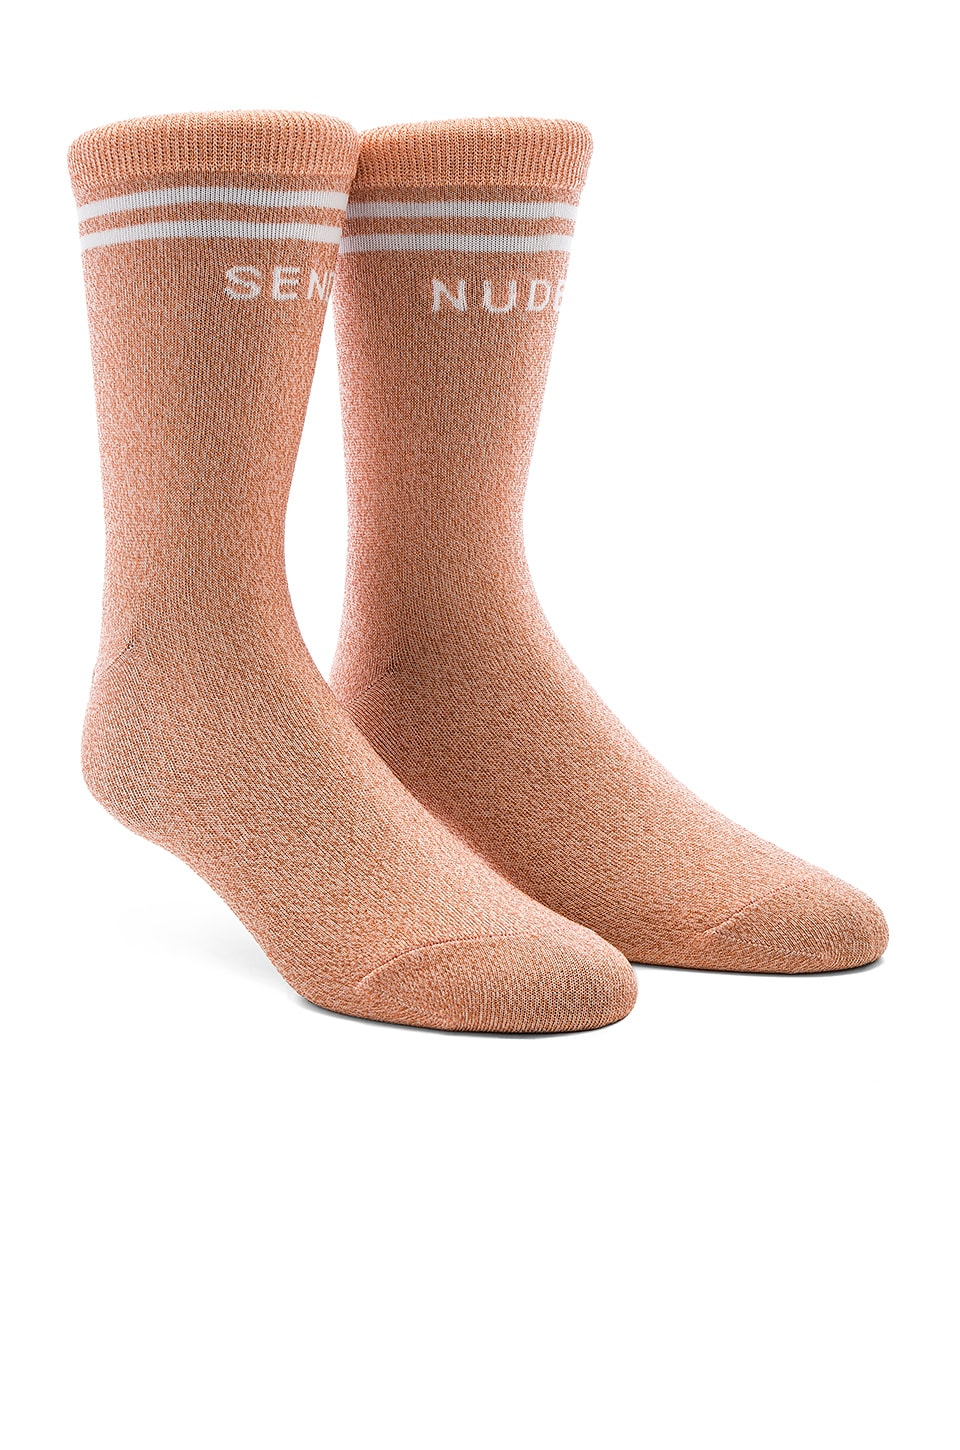 MOTHER The Tiny Dancer Socks in Nude Lurex